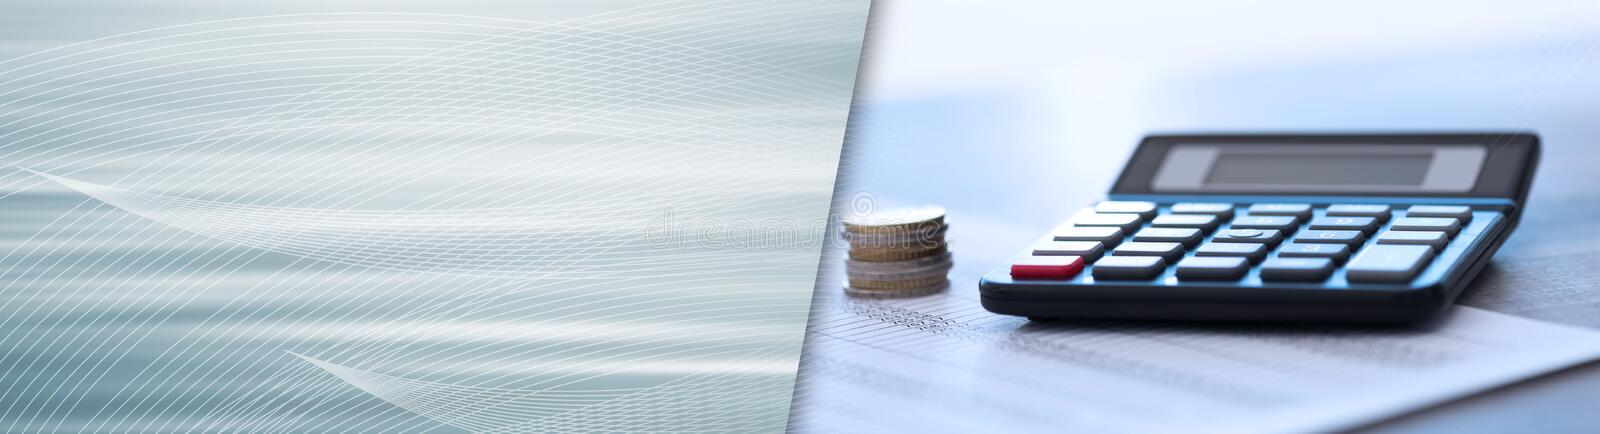 Calculator on financial documents, accounting concept. panoramic banner royalty free stock photos